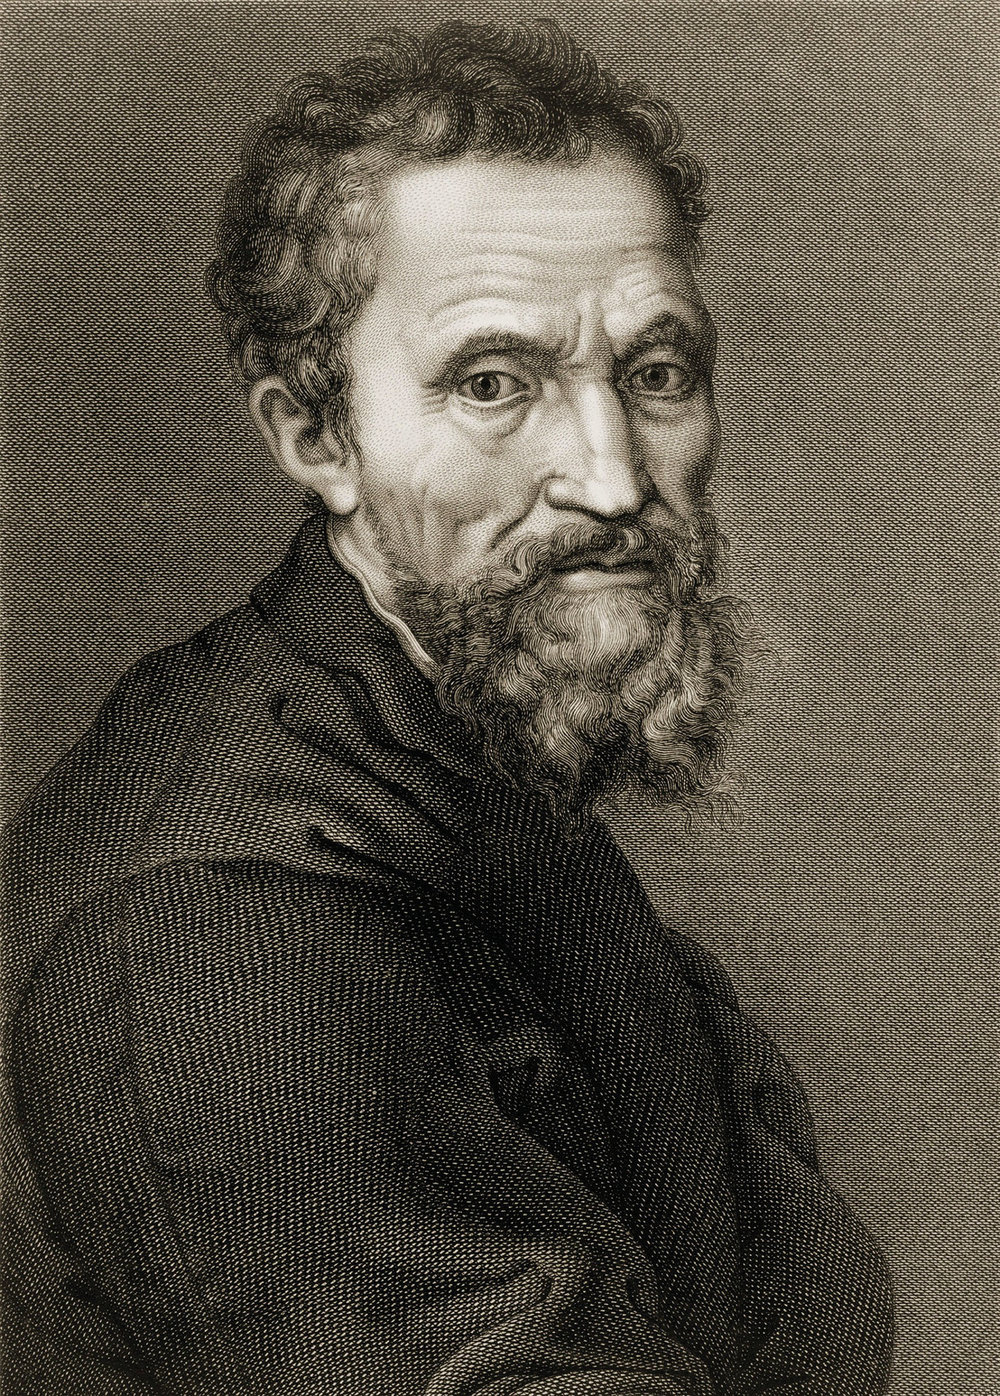 Considered the engineer of the High Renaissance, Michelangelo's talent was recognized by the church early on, leading to his religious works of the Pieta, David, and the Sistine Chapel. Everett Historical / Shutterstock